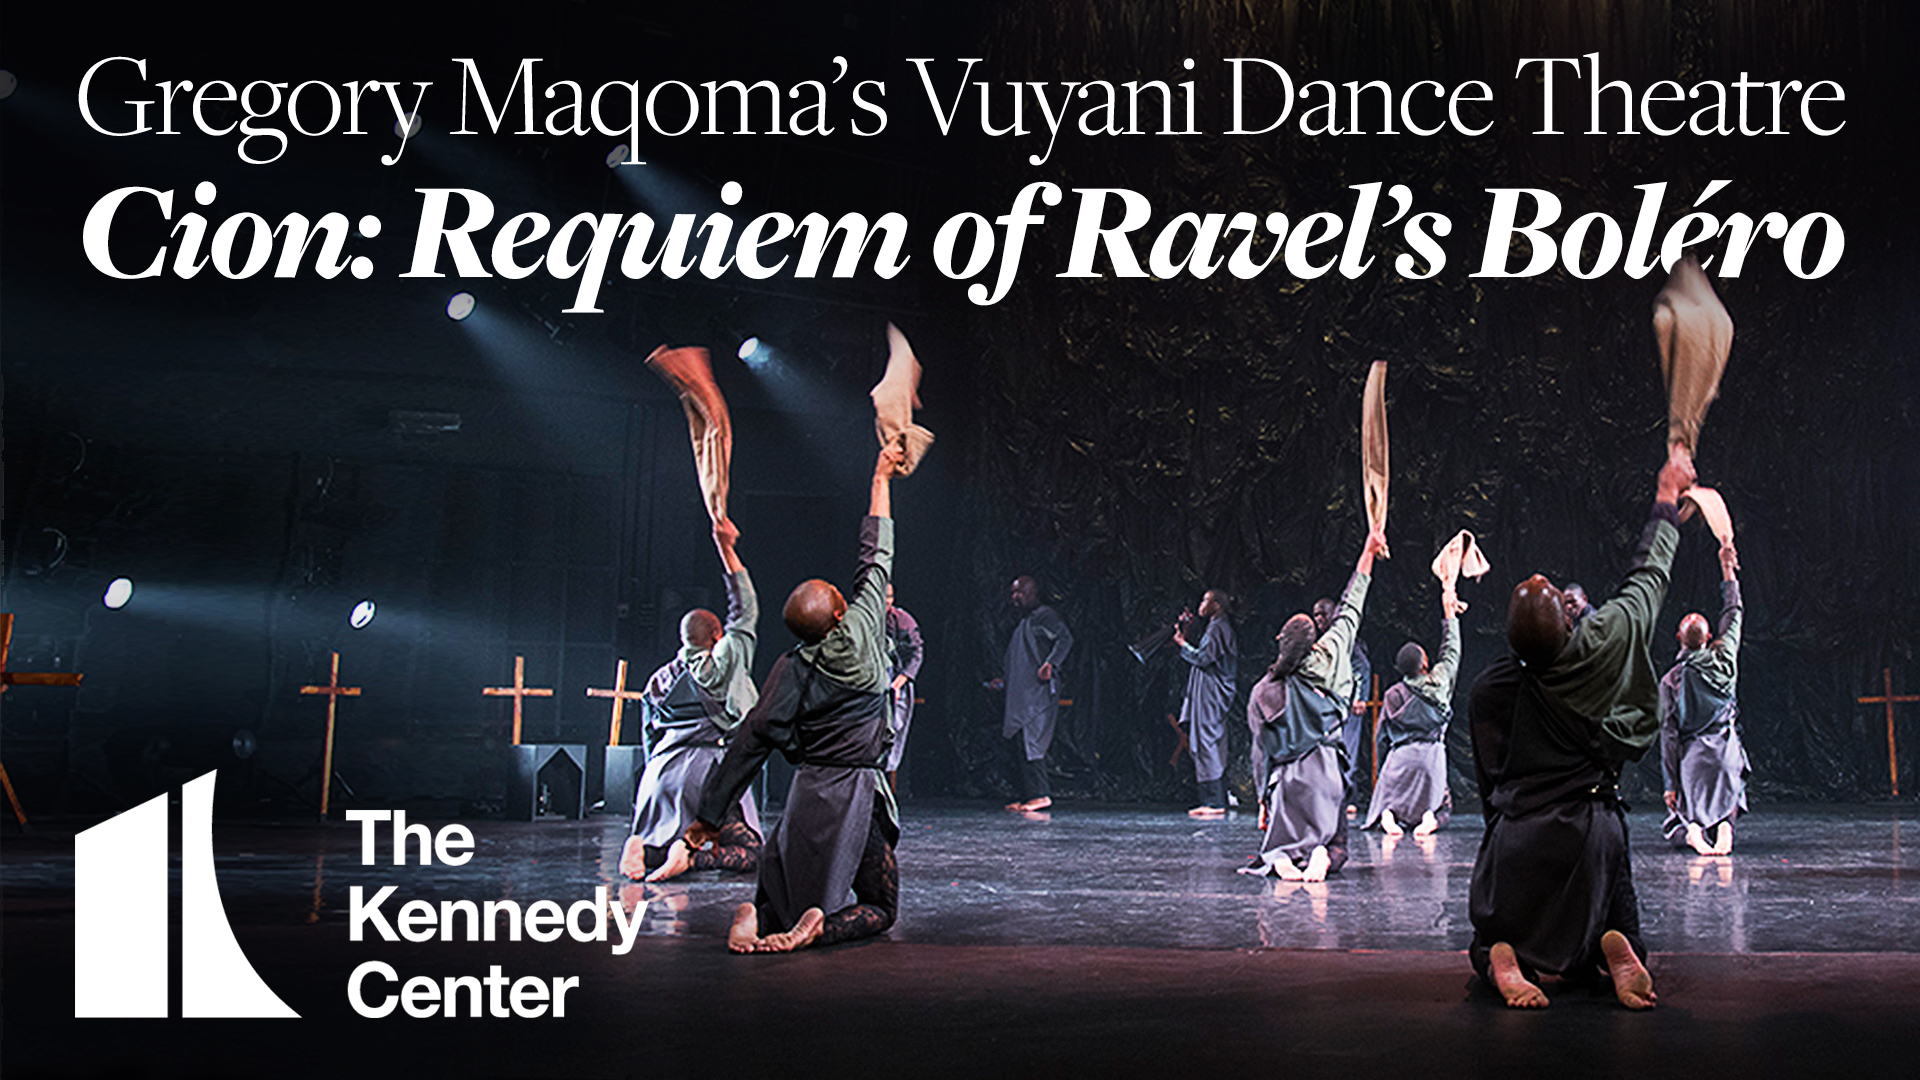 Gregory Maqoma's Vuyani Dance Theatre: Cion: Requiem of Ravel's Boléro